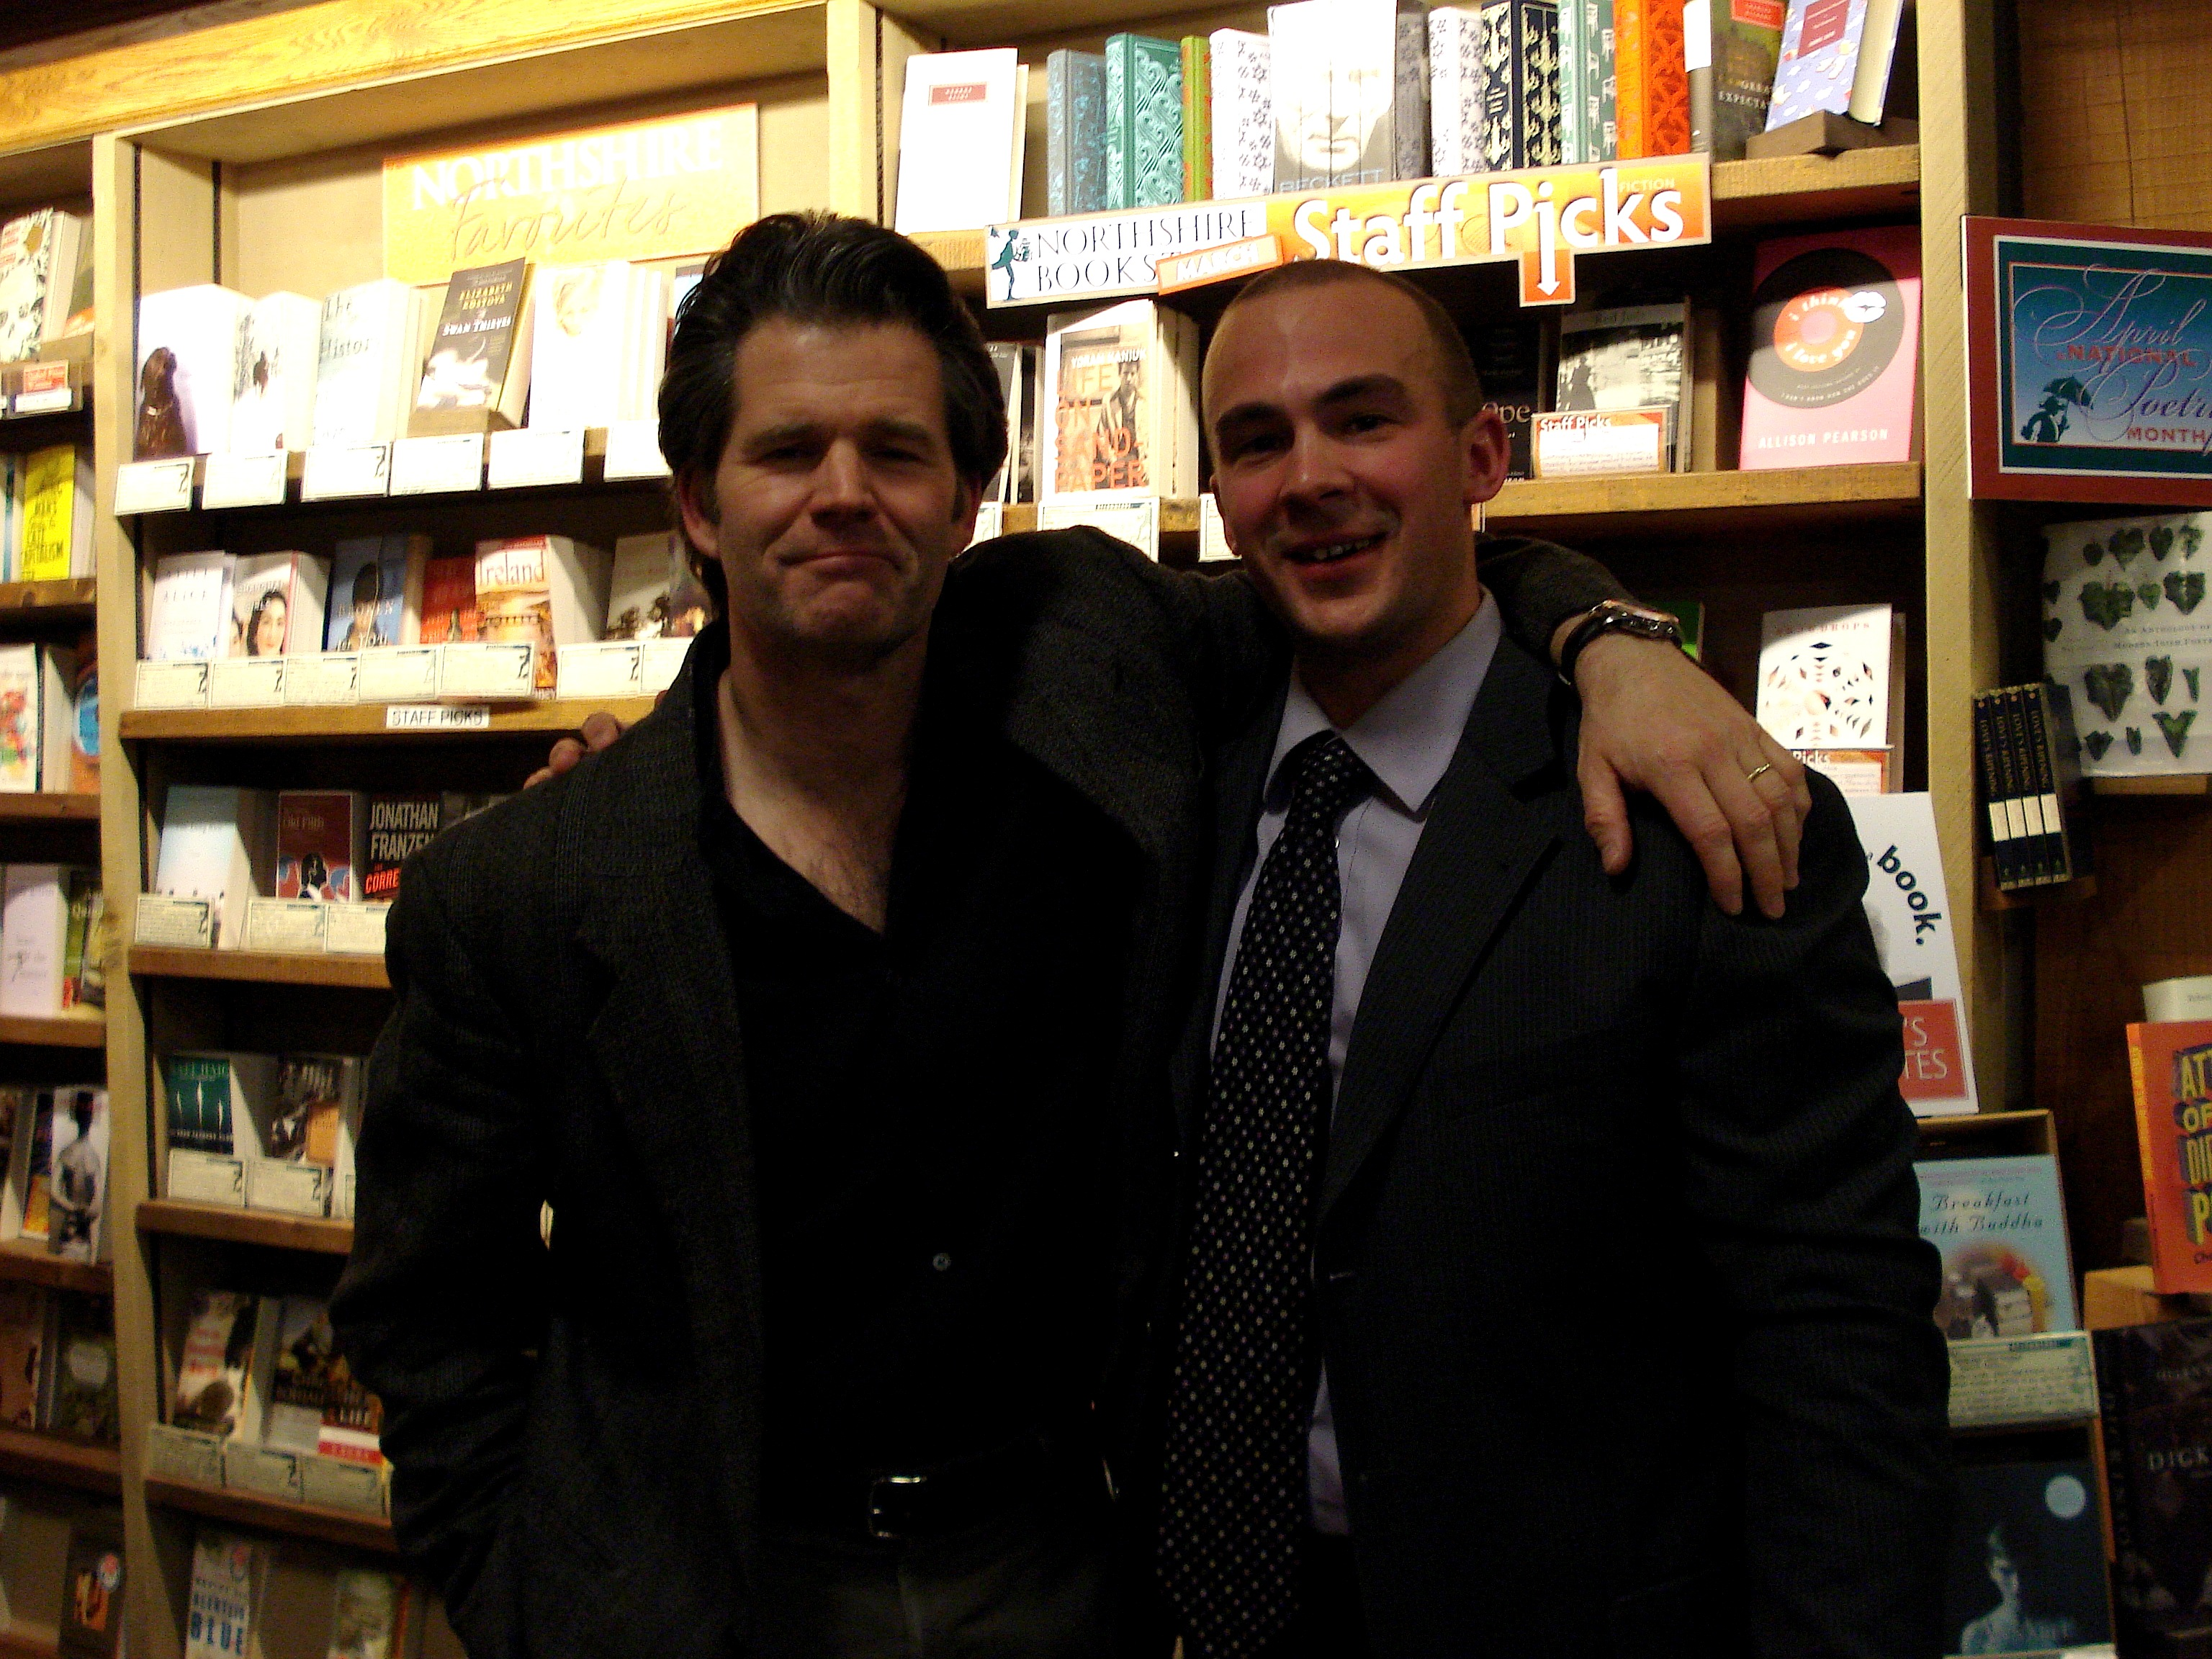 Andre and me in 2011 at Northshire Bookstore in Manchester Ctr, Vermont.